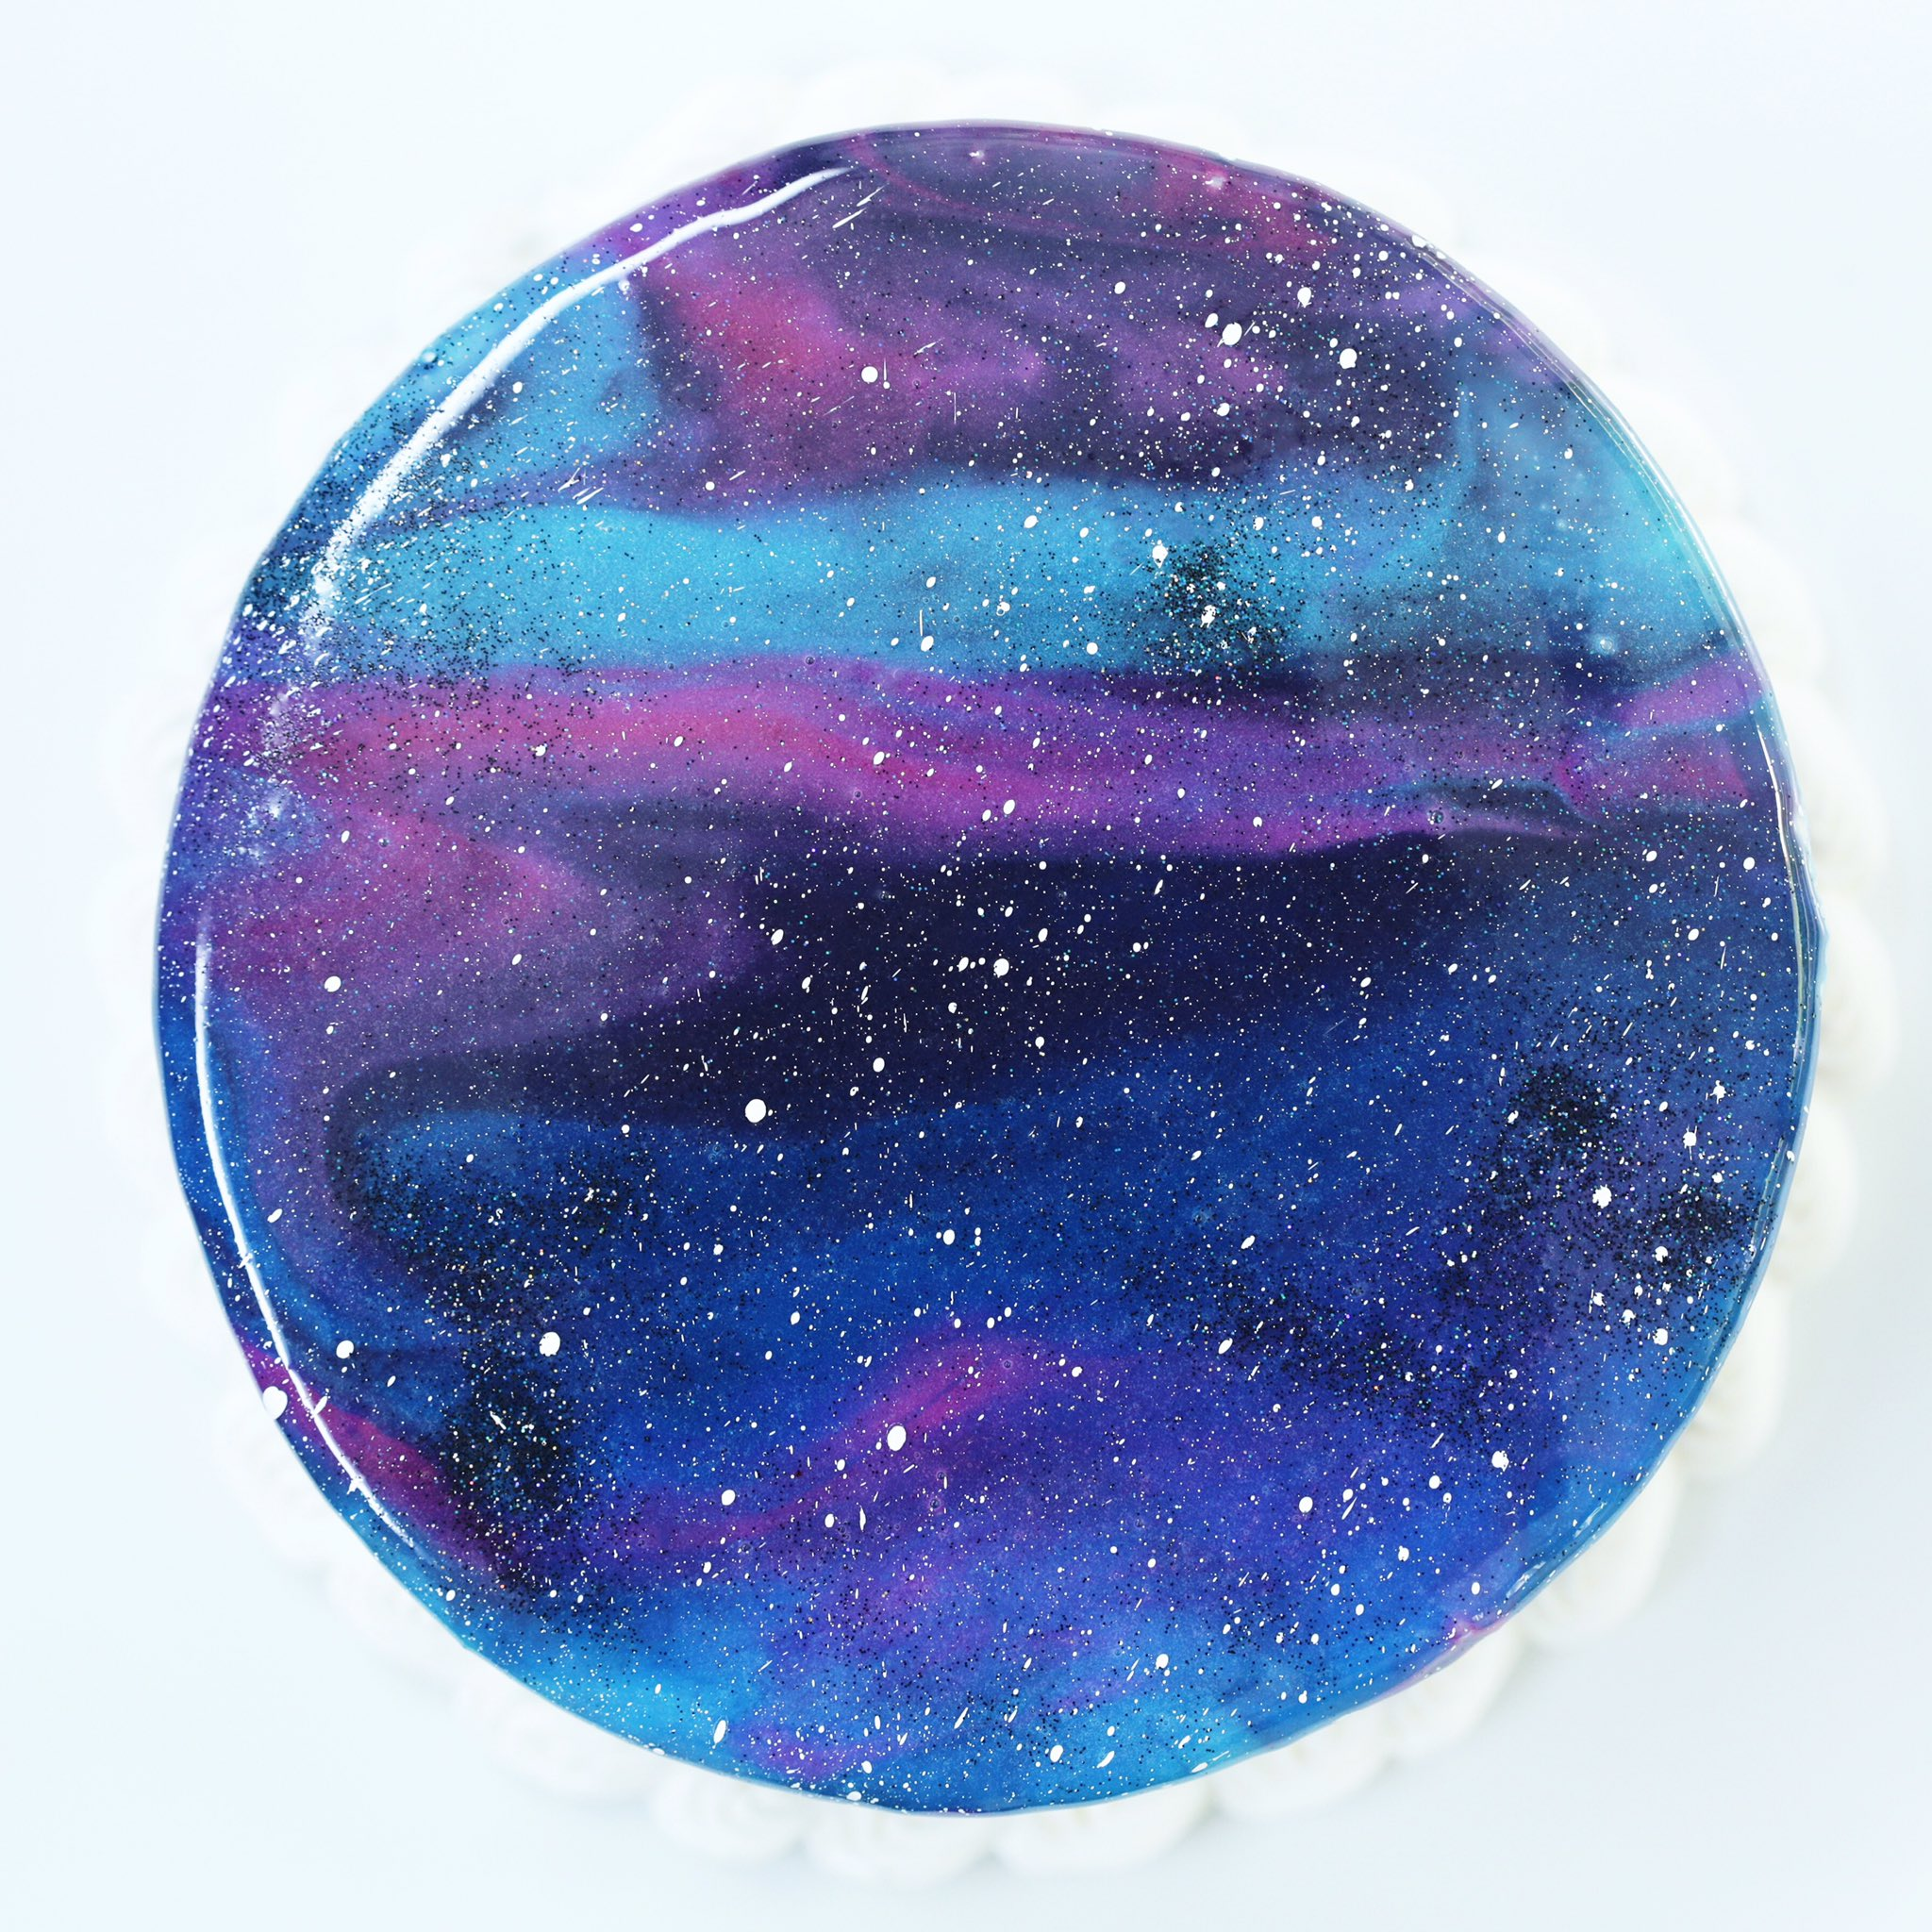 Rosanna Pansino On Twitter Quot Here Is The Galaxy Themed